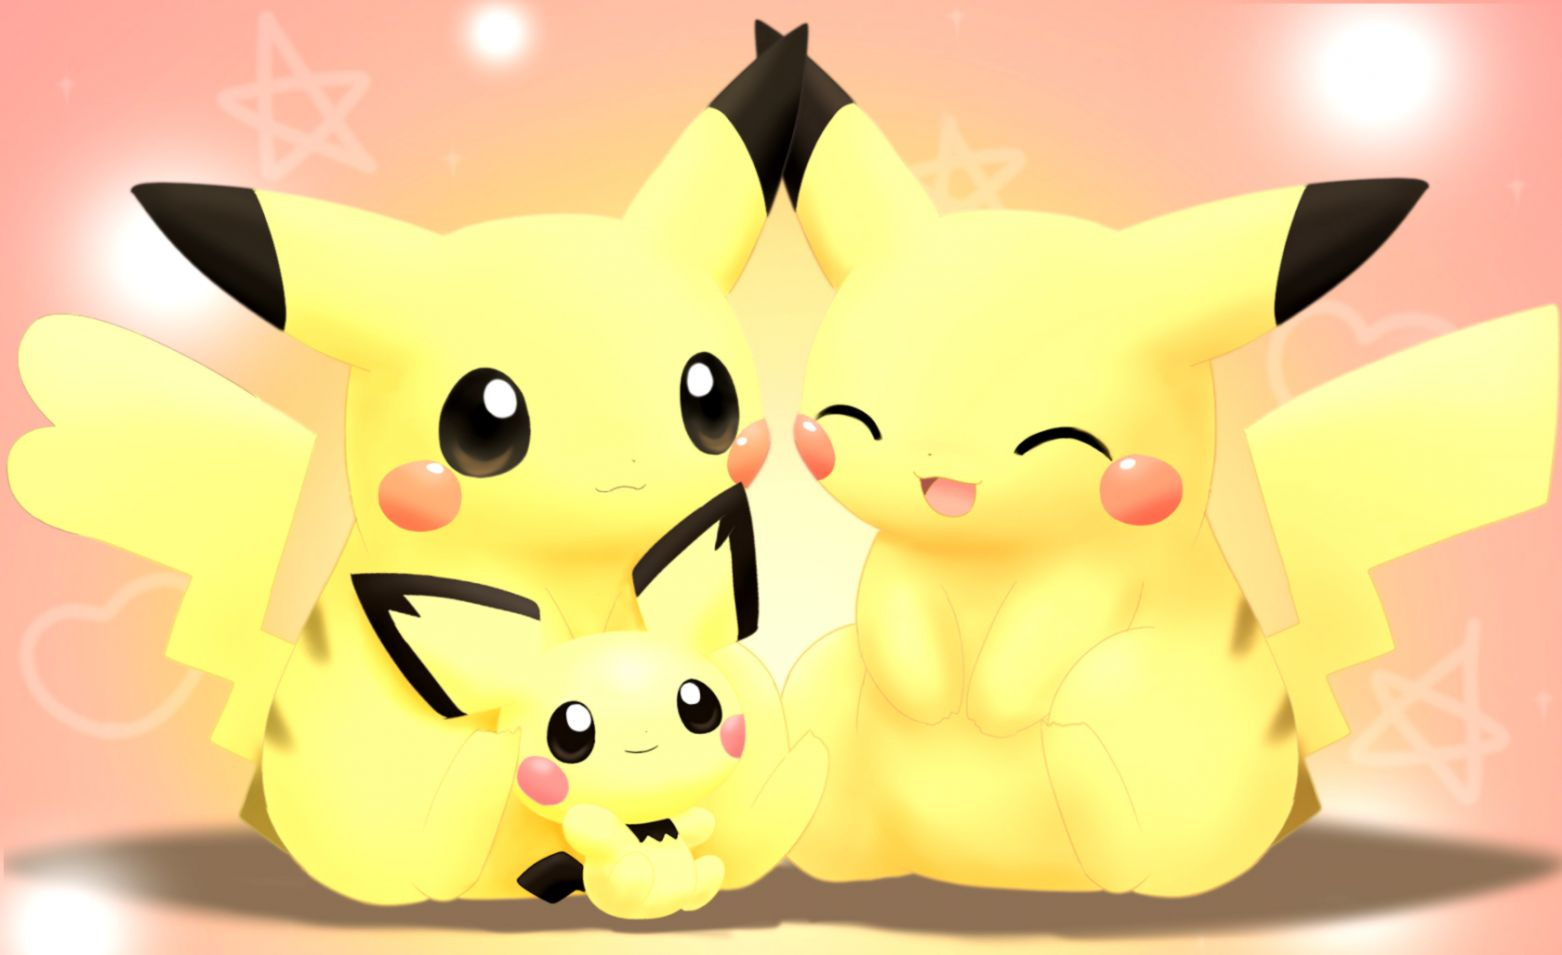 Pikachu Pokemon Cute Couples Hd Wallpaper All in One Wallpapers 1562x955